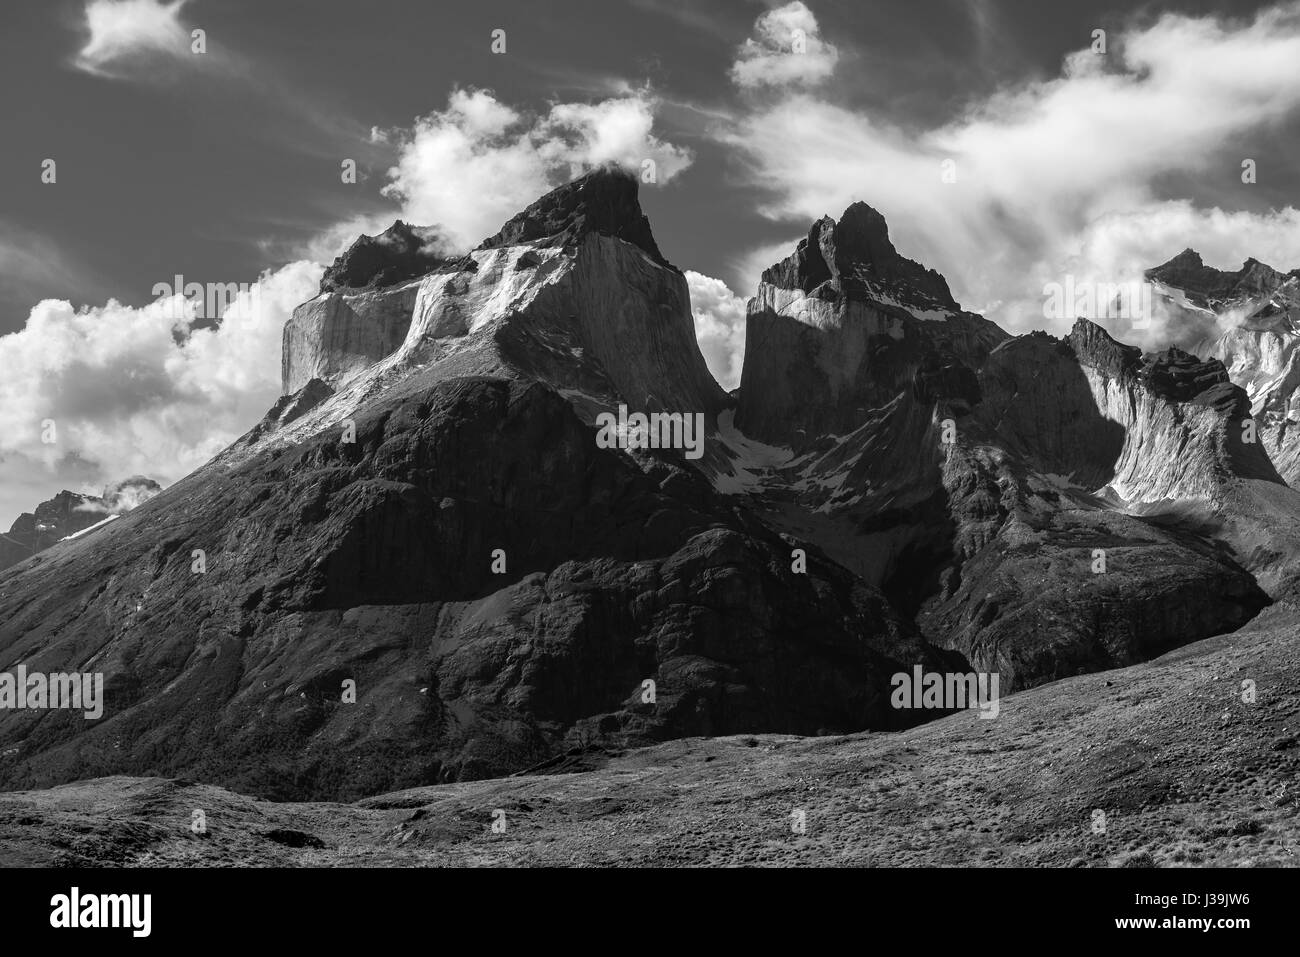 Black and white photograph of the majestic Cuernos (horns) del Paine Andes peaks inside the Torres del Paine national - Stock Image